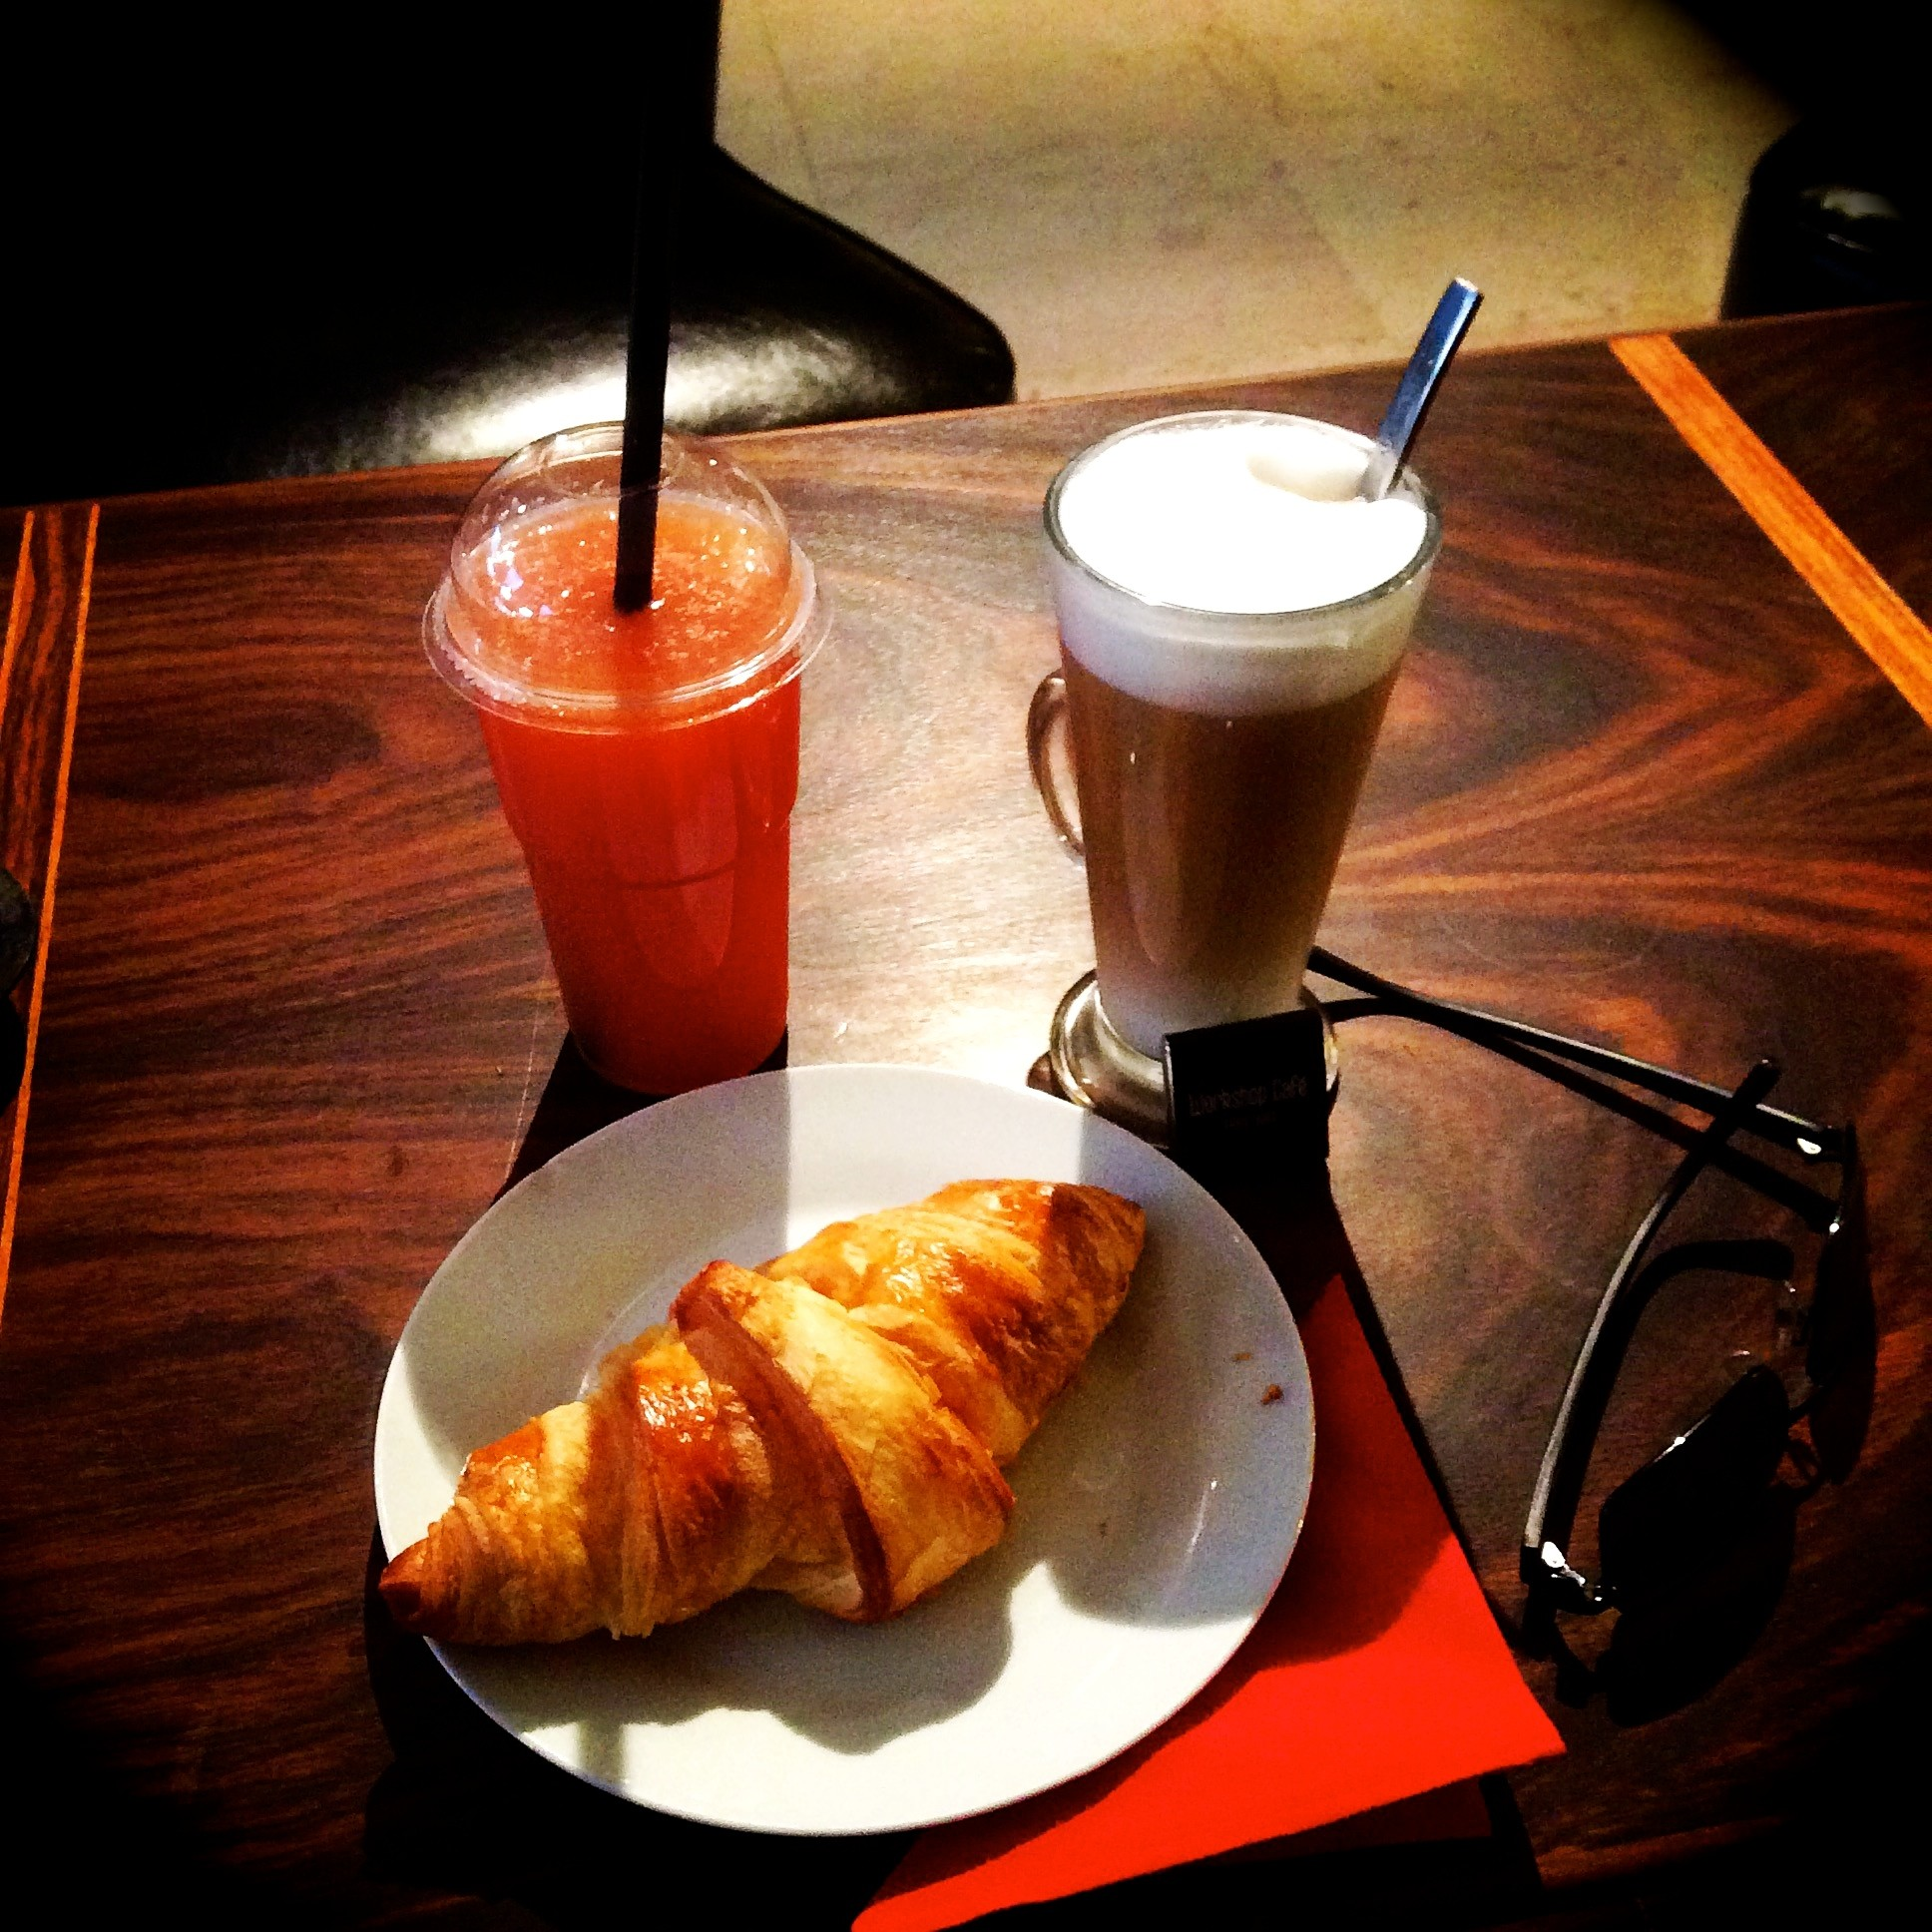 A photo of breakfast at the Workshop Cafe - Brussels, Belgium